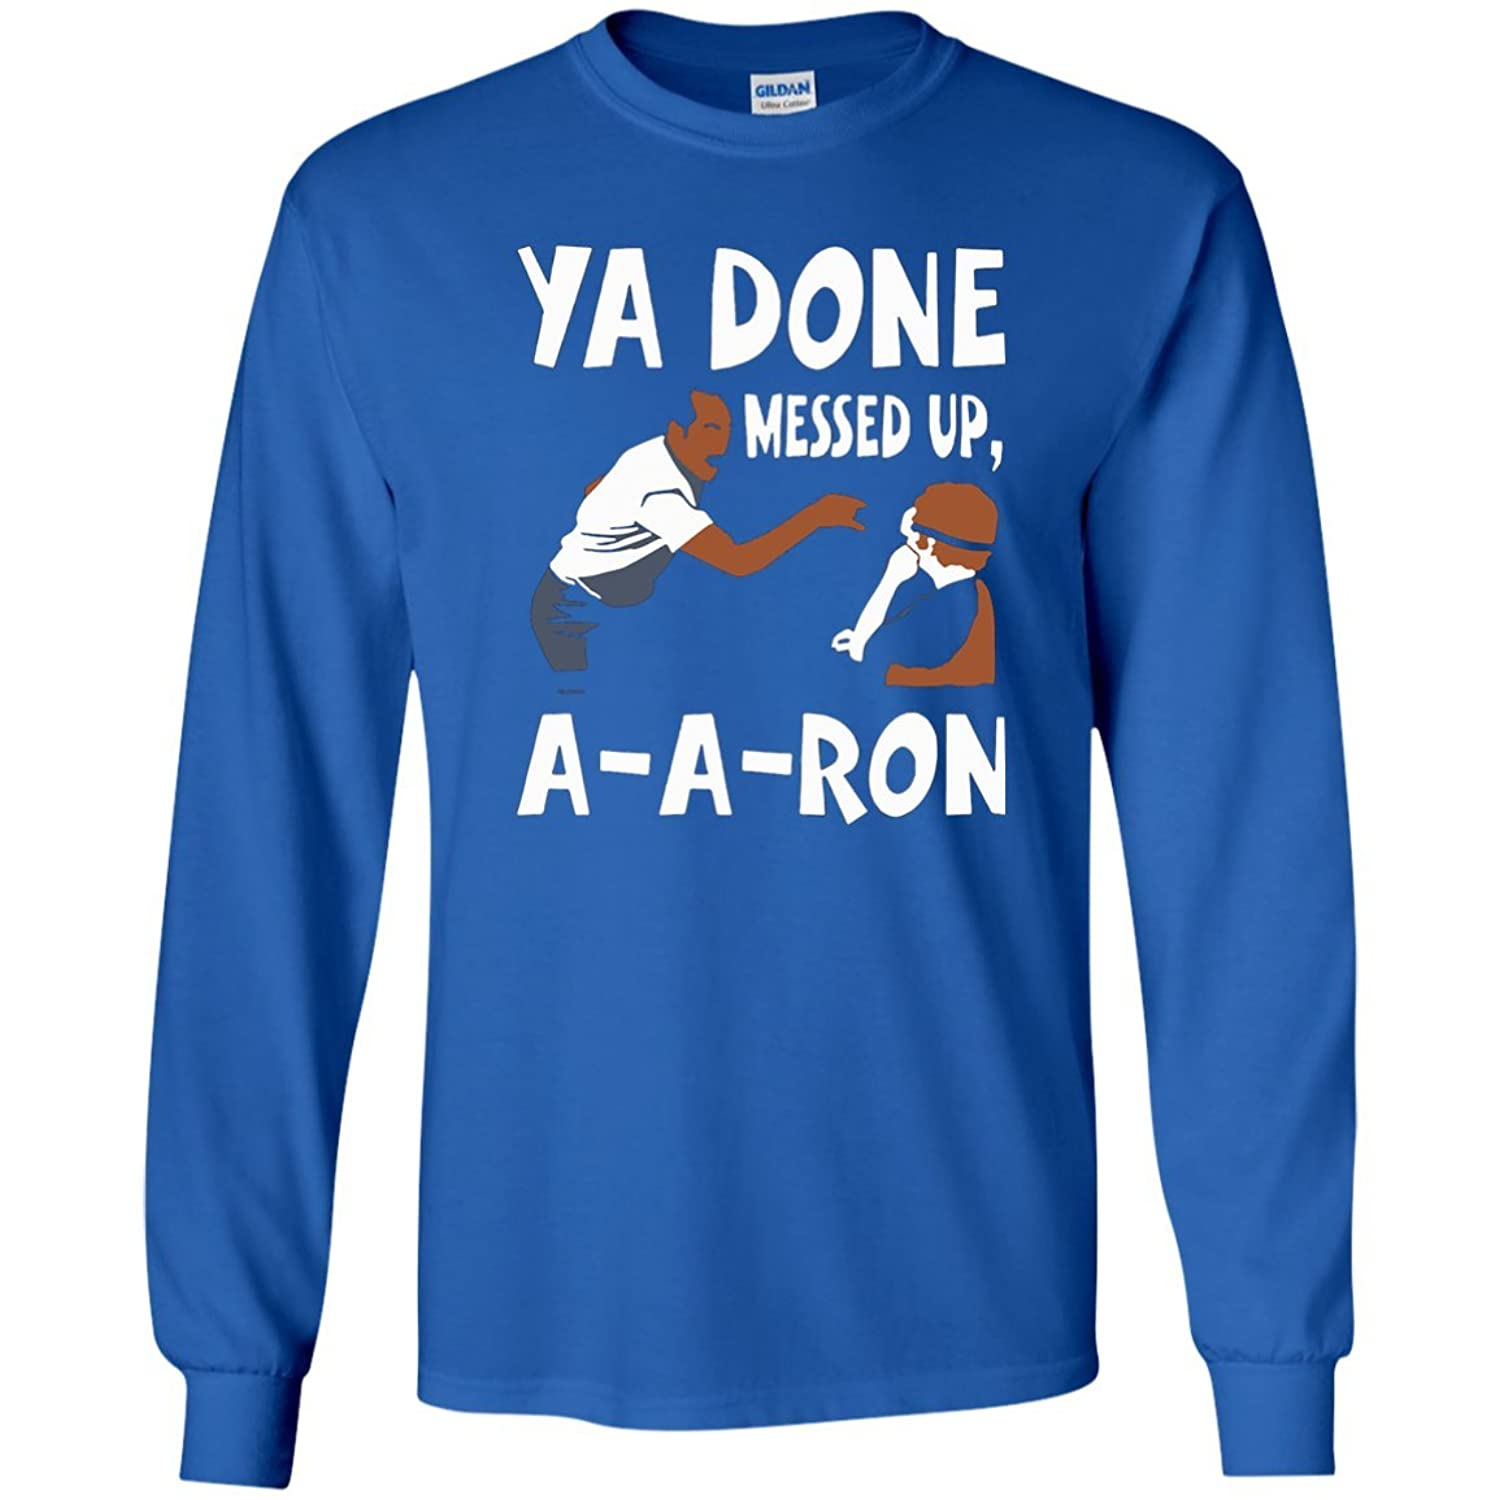 Long Sleeve Ya Done Messed Up, A-A-Ron! - Substitute Teacher